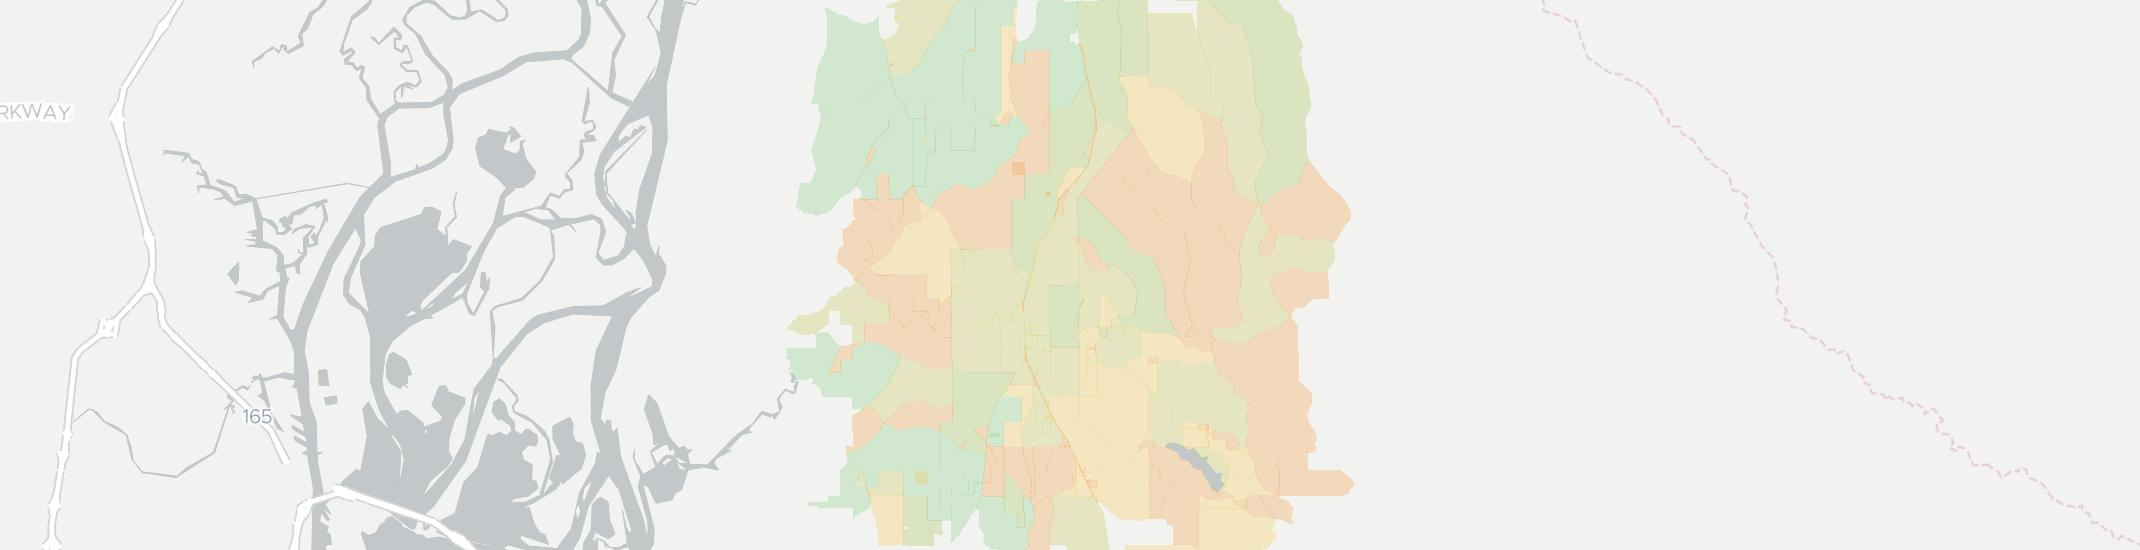 Stapleton Internet Competition Map. Click for interactive map.